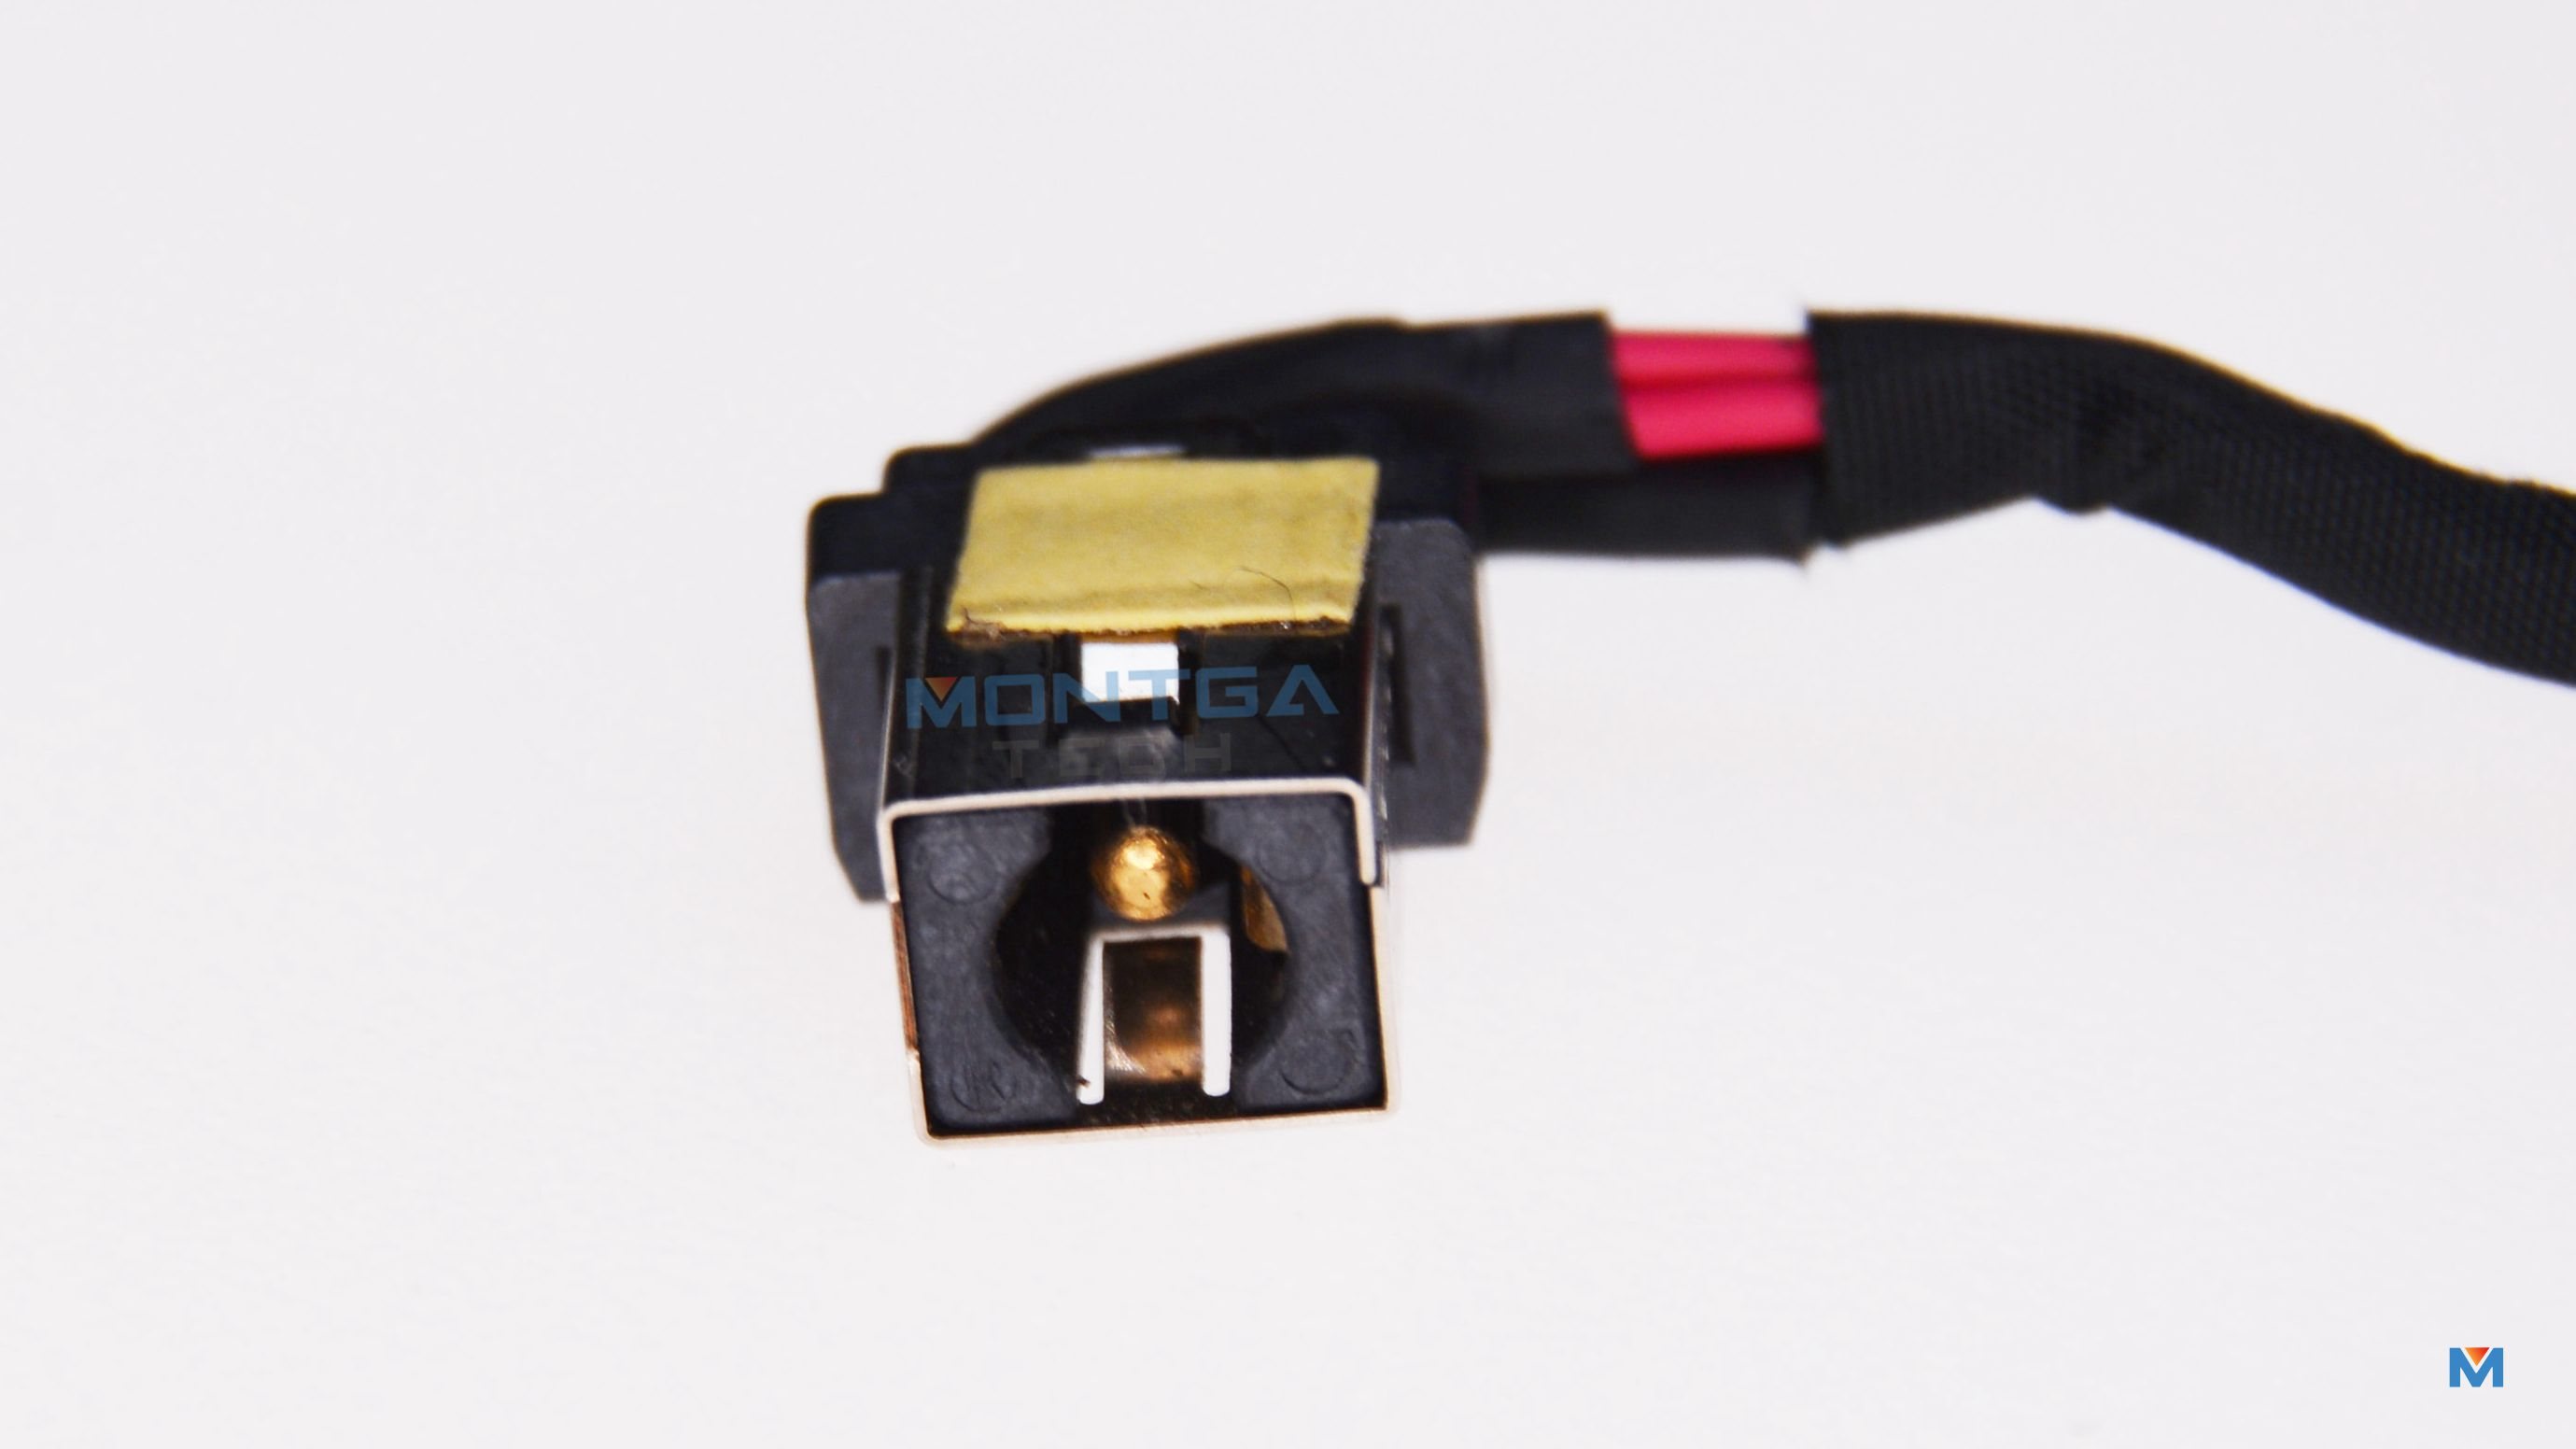 repair charging connector Lenovo B50-10, repair DC Power Jack Lenovo B50-10, repair DC IN Cable Lenovo B50-10, repair Jack socket Lenovo B50-10, repair plug Lenovo B50-10, repair DC Alimantation Lenovo B50-10, replace charging connector Lenovo B50-10, replace DC Power Jack Lenovo B50-10, replace DC IN Cable Lenovo B50-10, replace Jack socket Lenovo B50-10, replace plug Lenovo B50-10, replace DC Alimantation Lenovo B50-10,